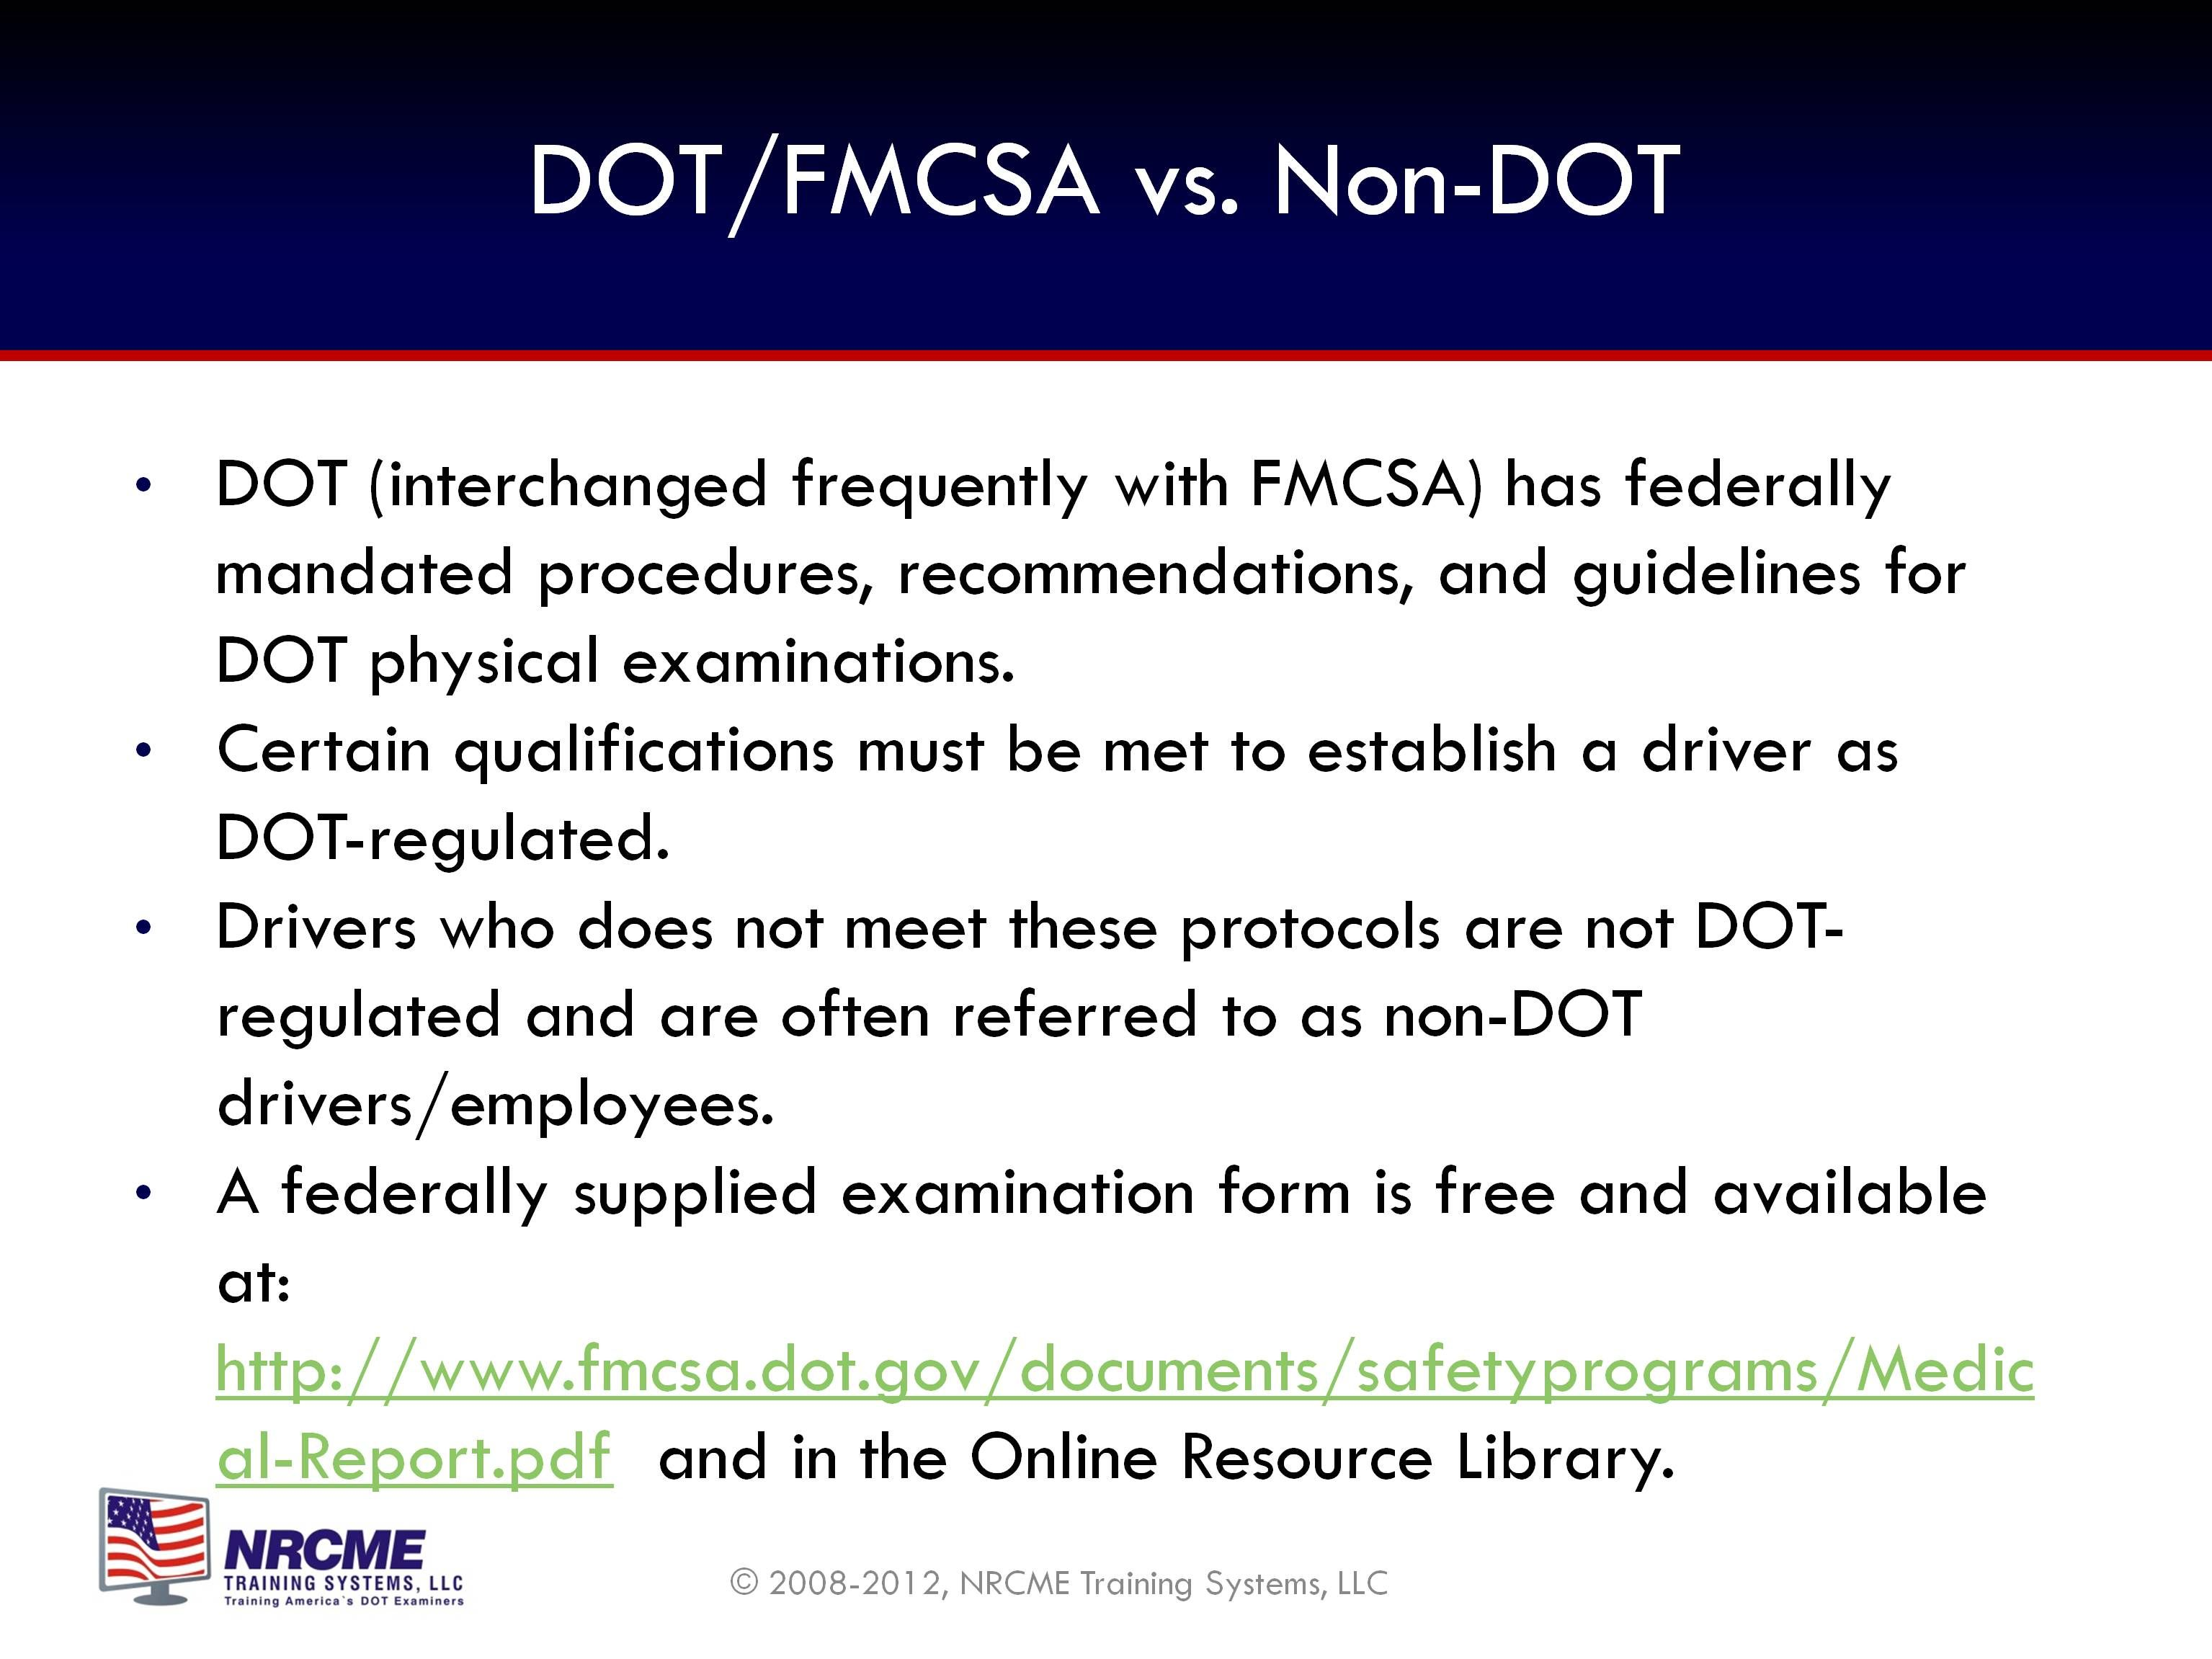 Fmcsa Dot Medical Exam Forms on medical discharge form, medical product evaluation form template, medical consult form, medical history and examination form, medical physical examination form, medical chief complaint form template, medical physical assessment form, sample medical history form, medical certificate form, medical form examples, medical history and physical form, medical waiver form, medical questionnaire form, medical clearance form, medical consultation form, adult medical history form, sample medical report form, medical examination form template, general medical examination form, medical check up form,